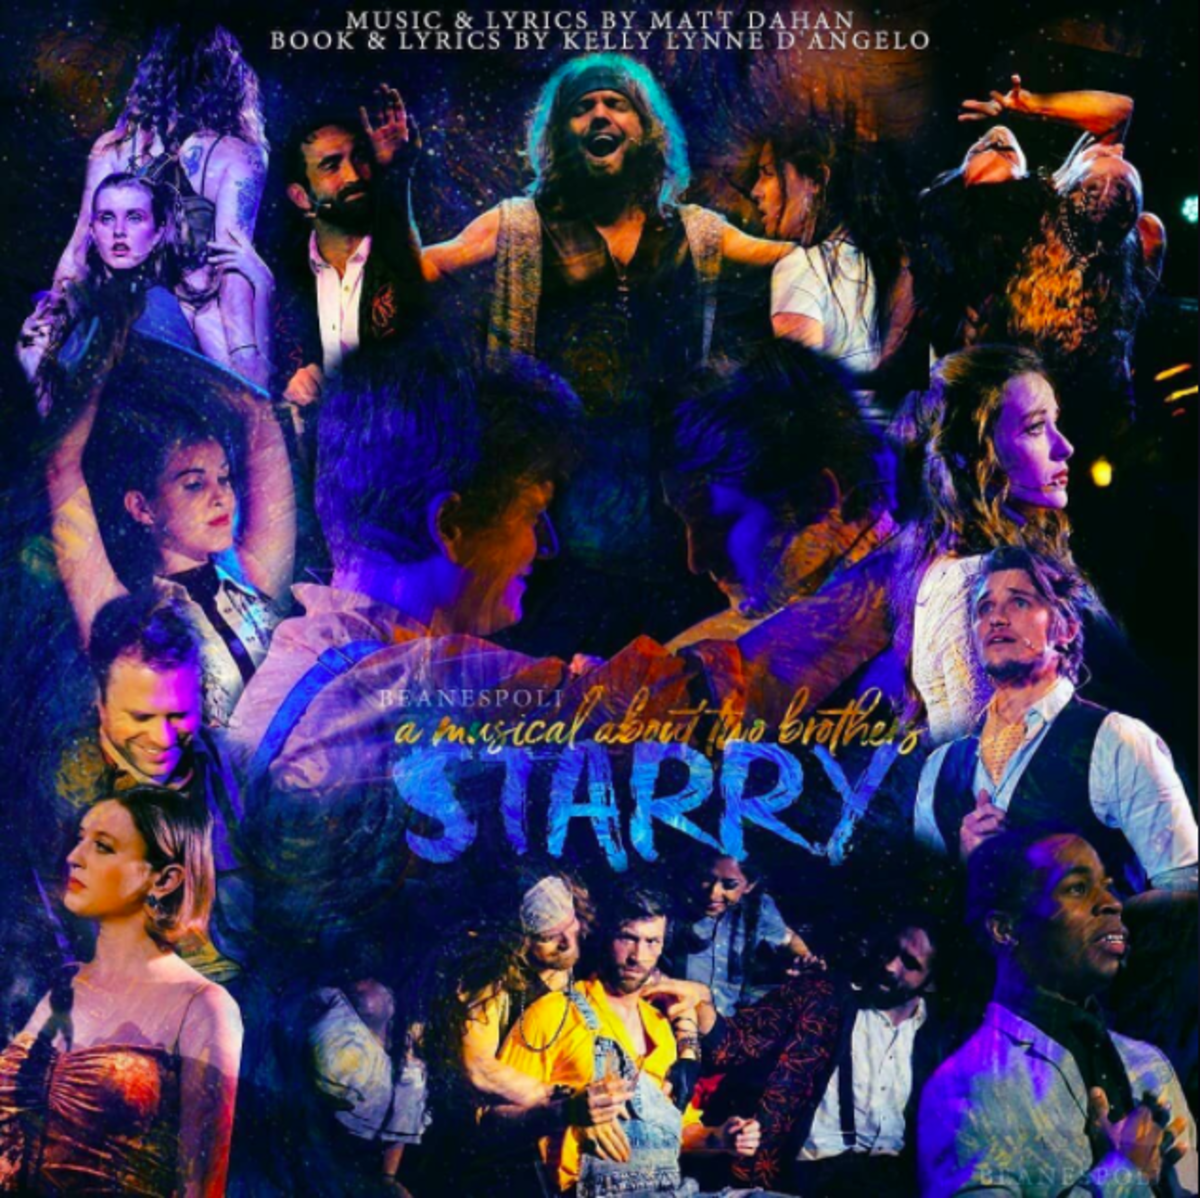 """Starry"" Concept Poster"